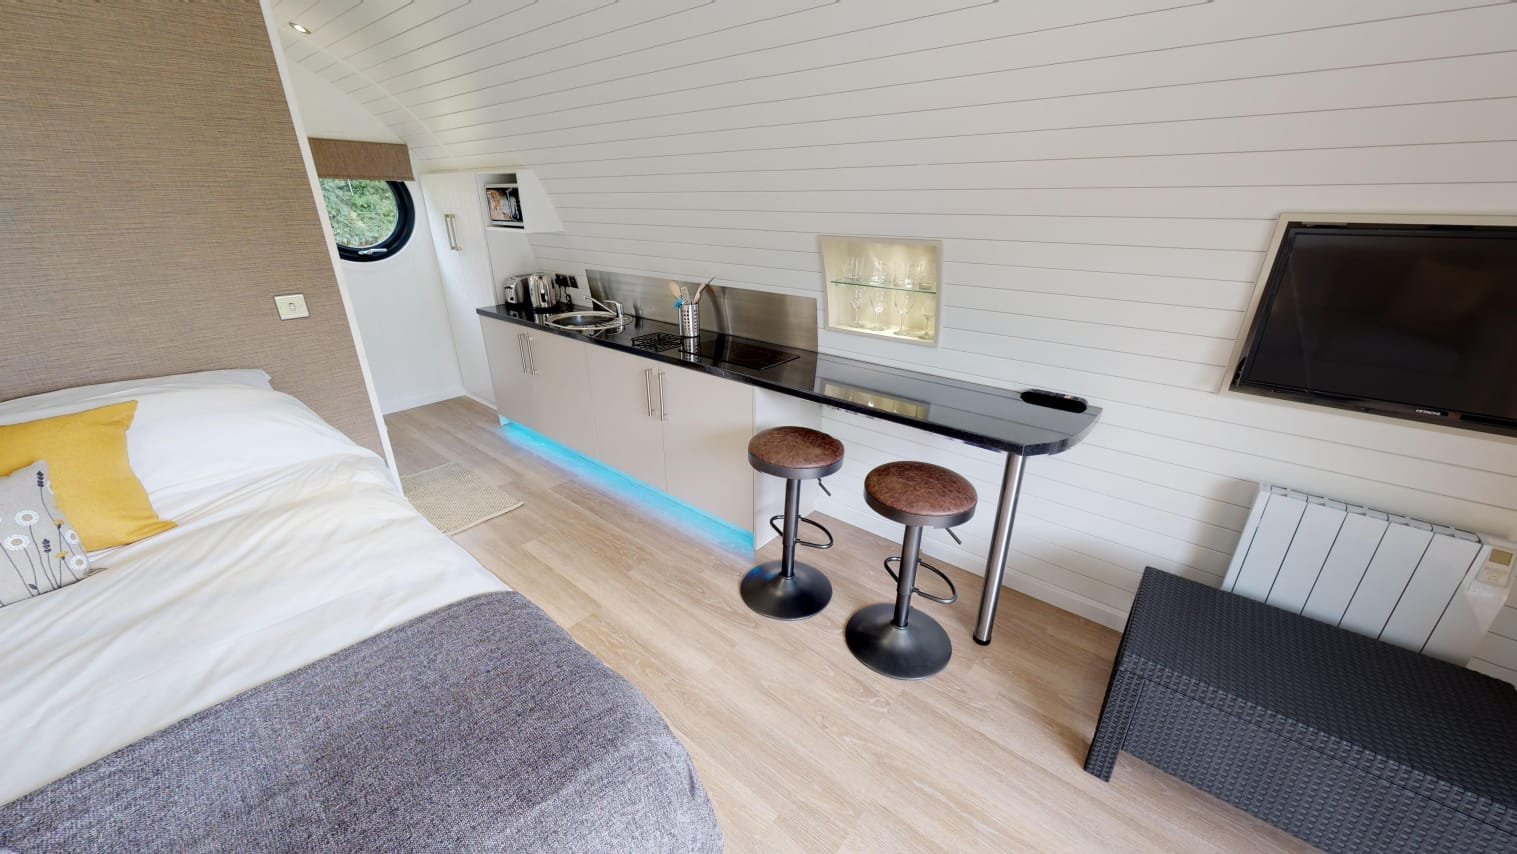 The Glamping Pods